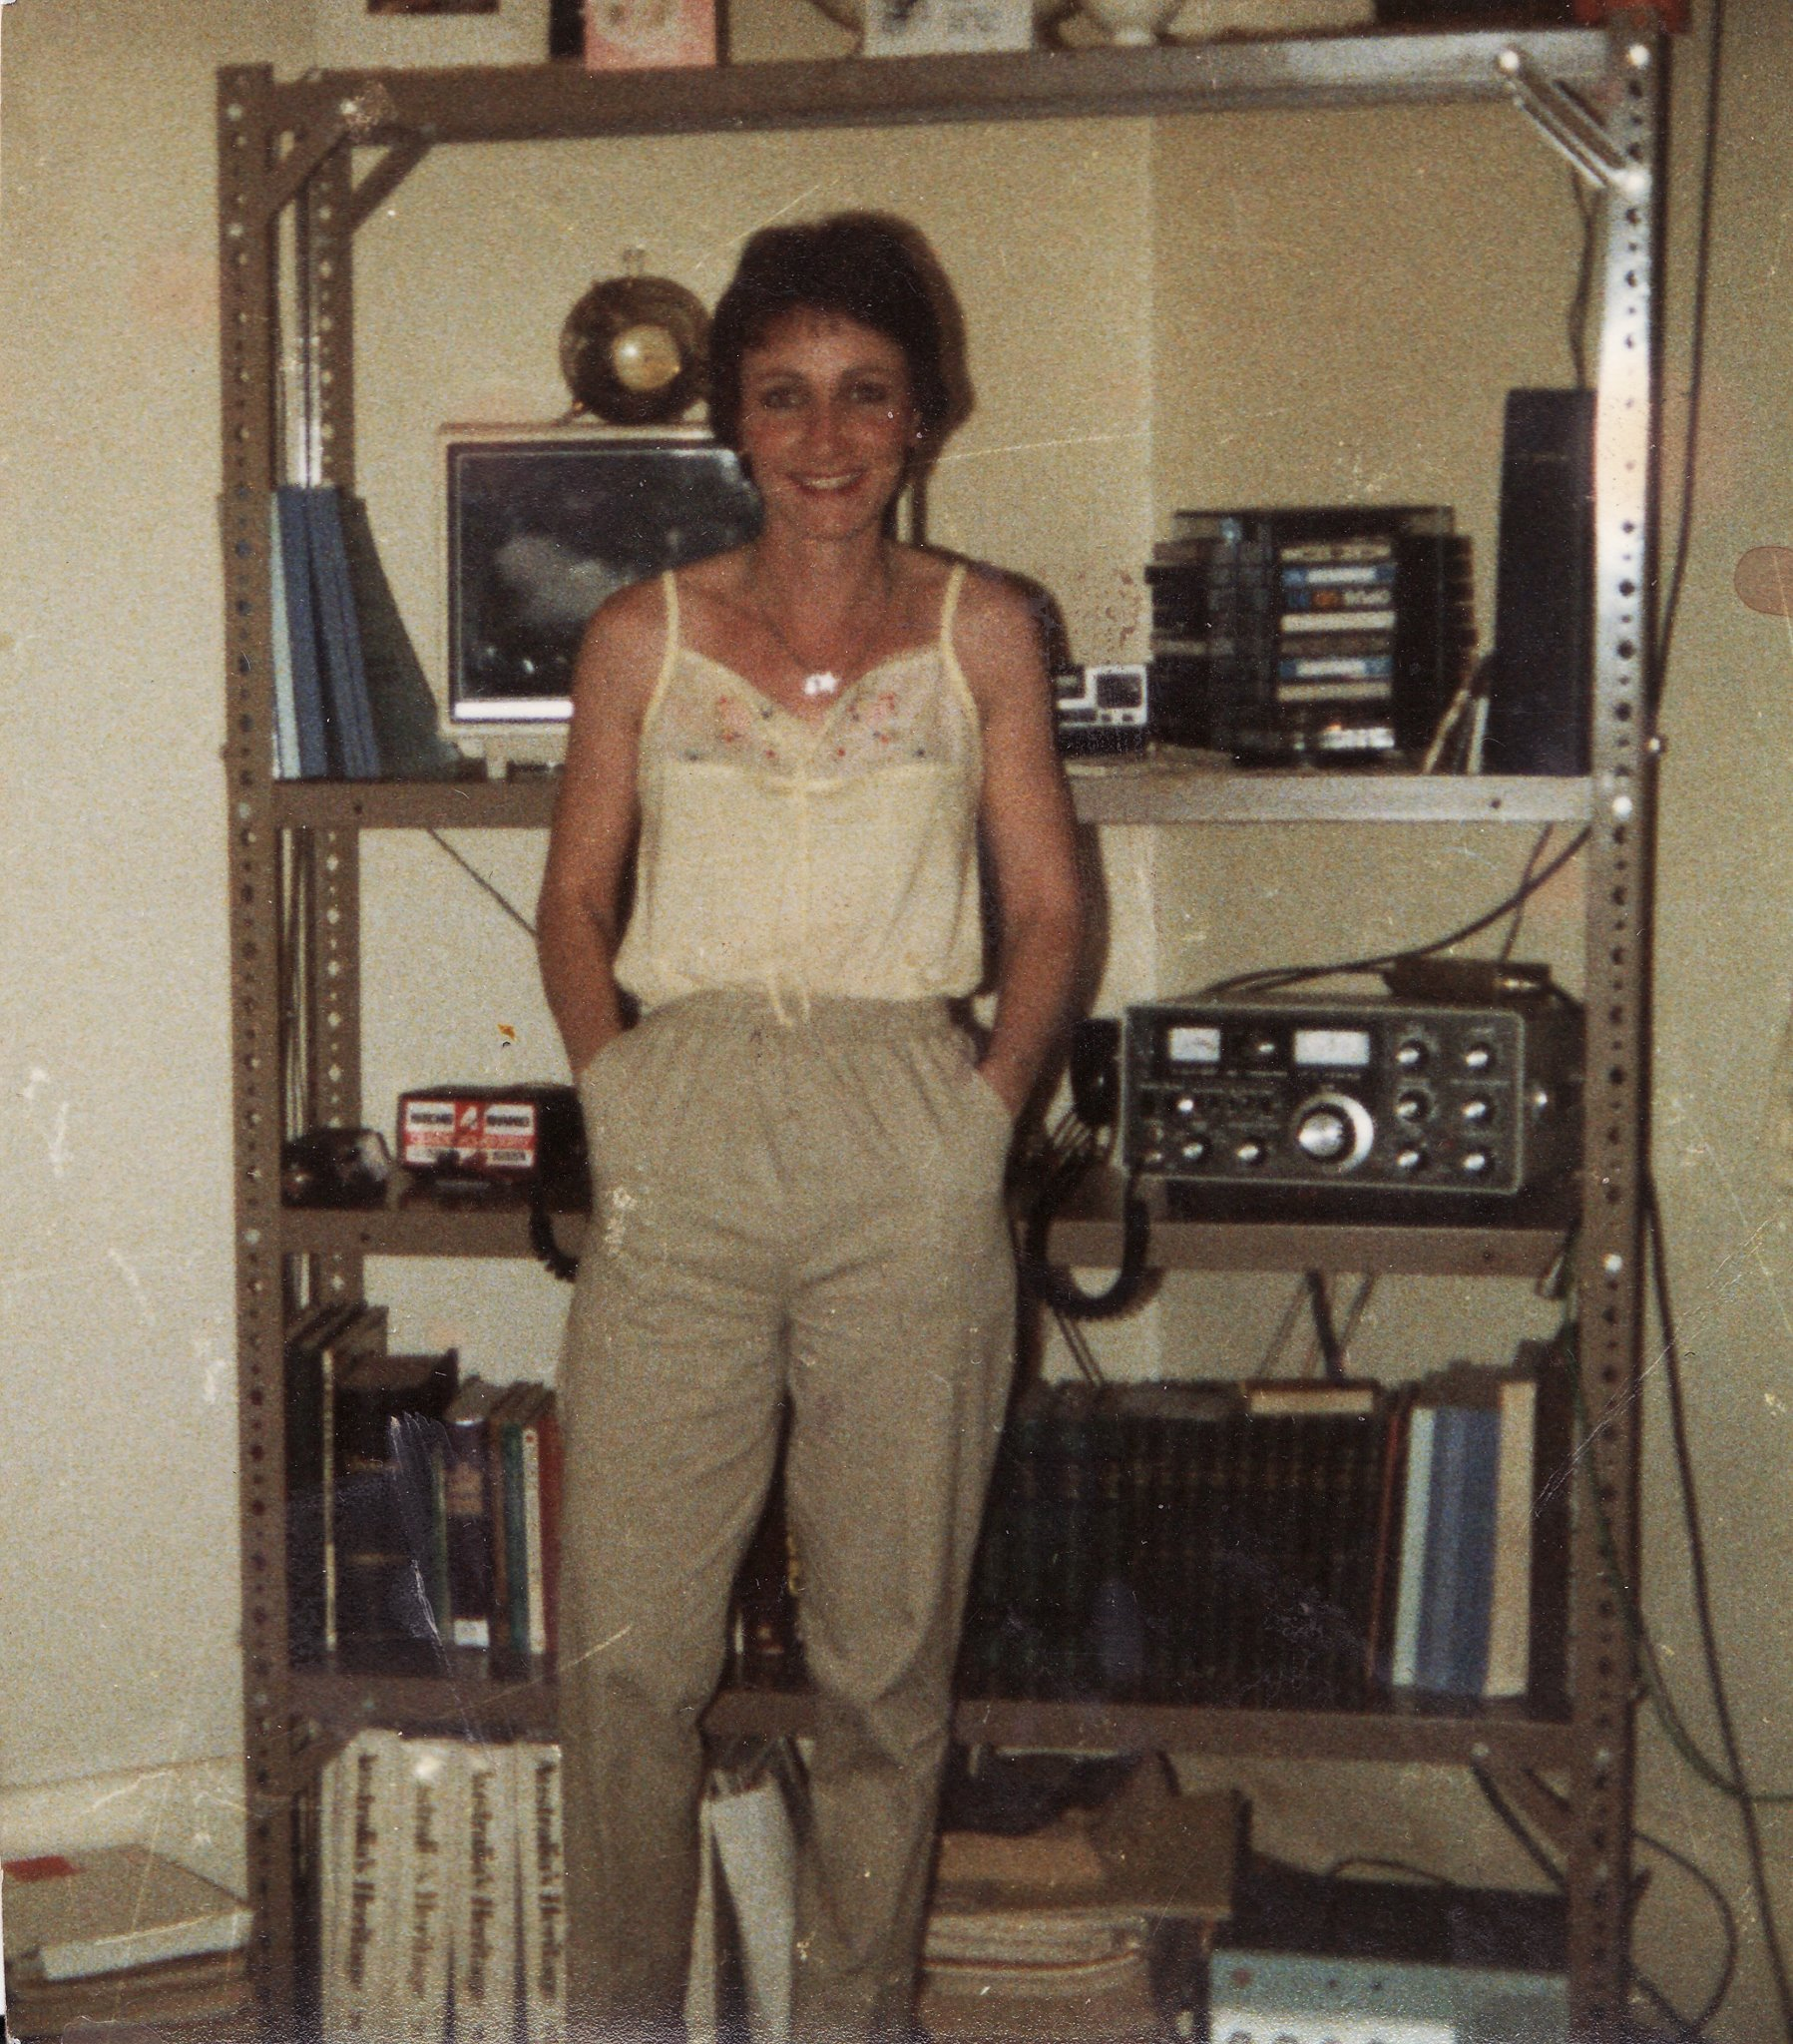 sue standing in front of radios